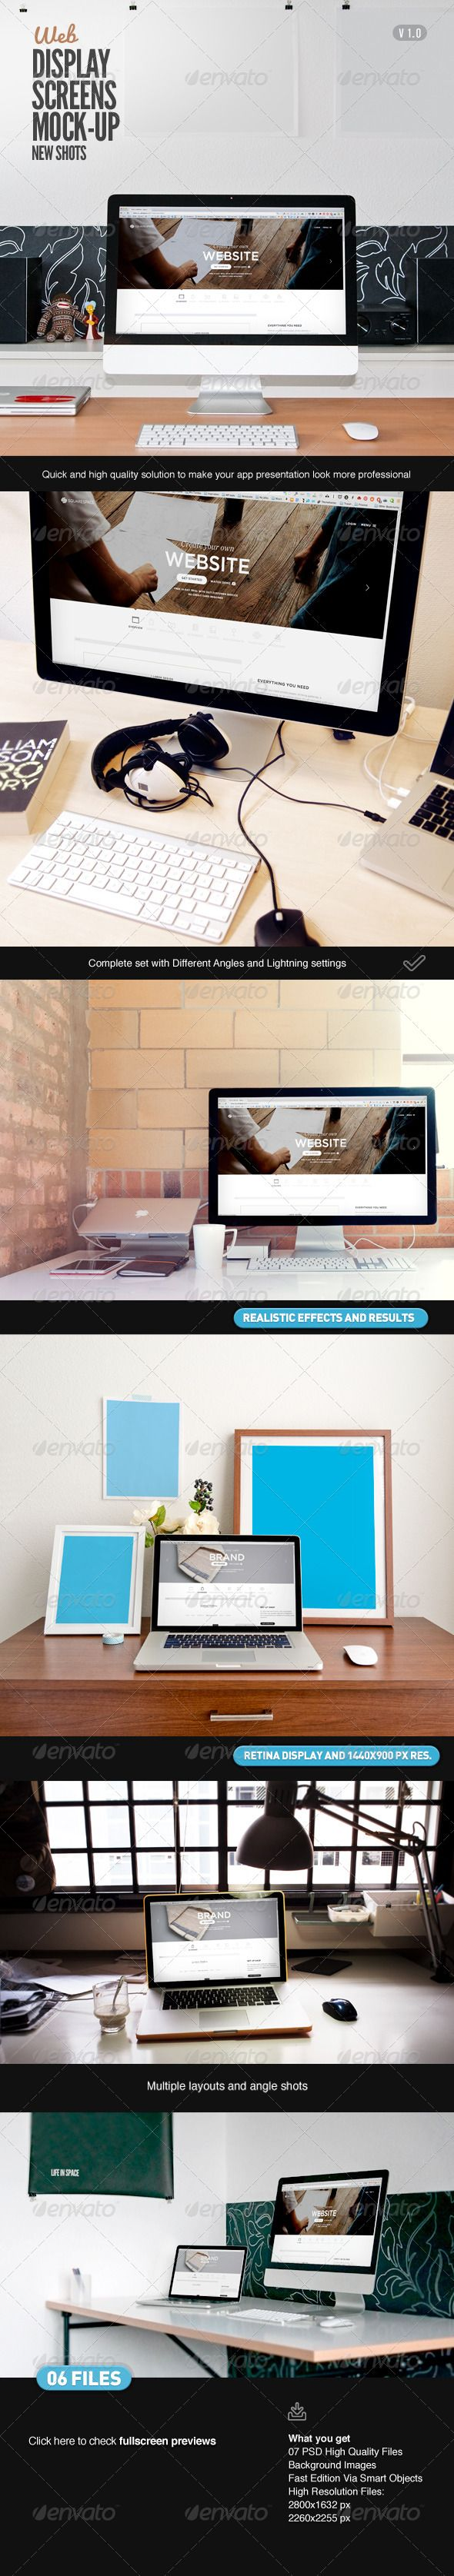 Display Screen Web Mock-Up. Special for website developers and app ui designers, to preview their apps in a professional way, showcasing details and focus on UI Design for Website and app design, using mock ups based on real photographs of iMac and Macbook Pro.